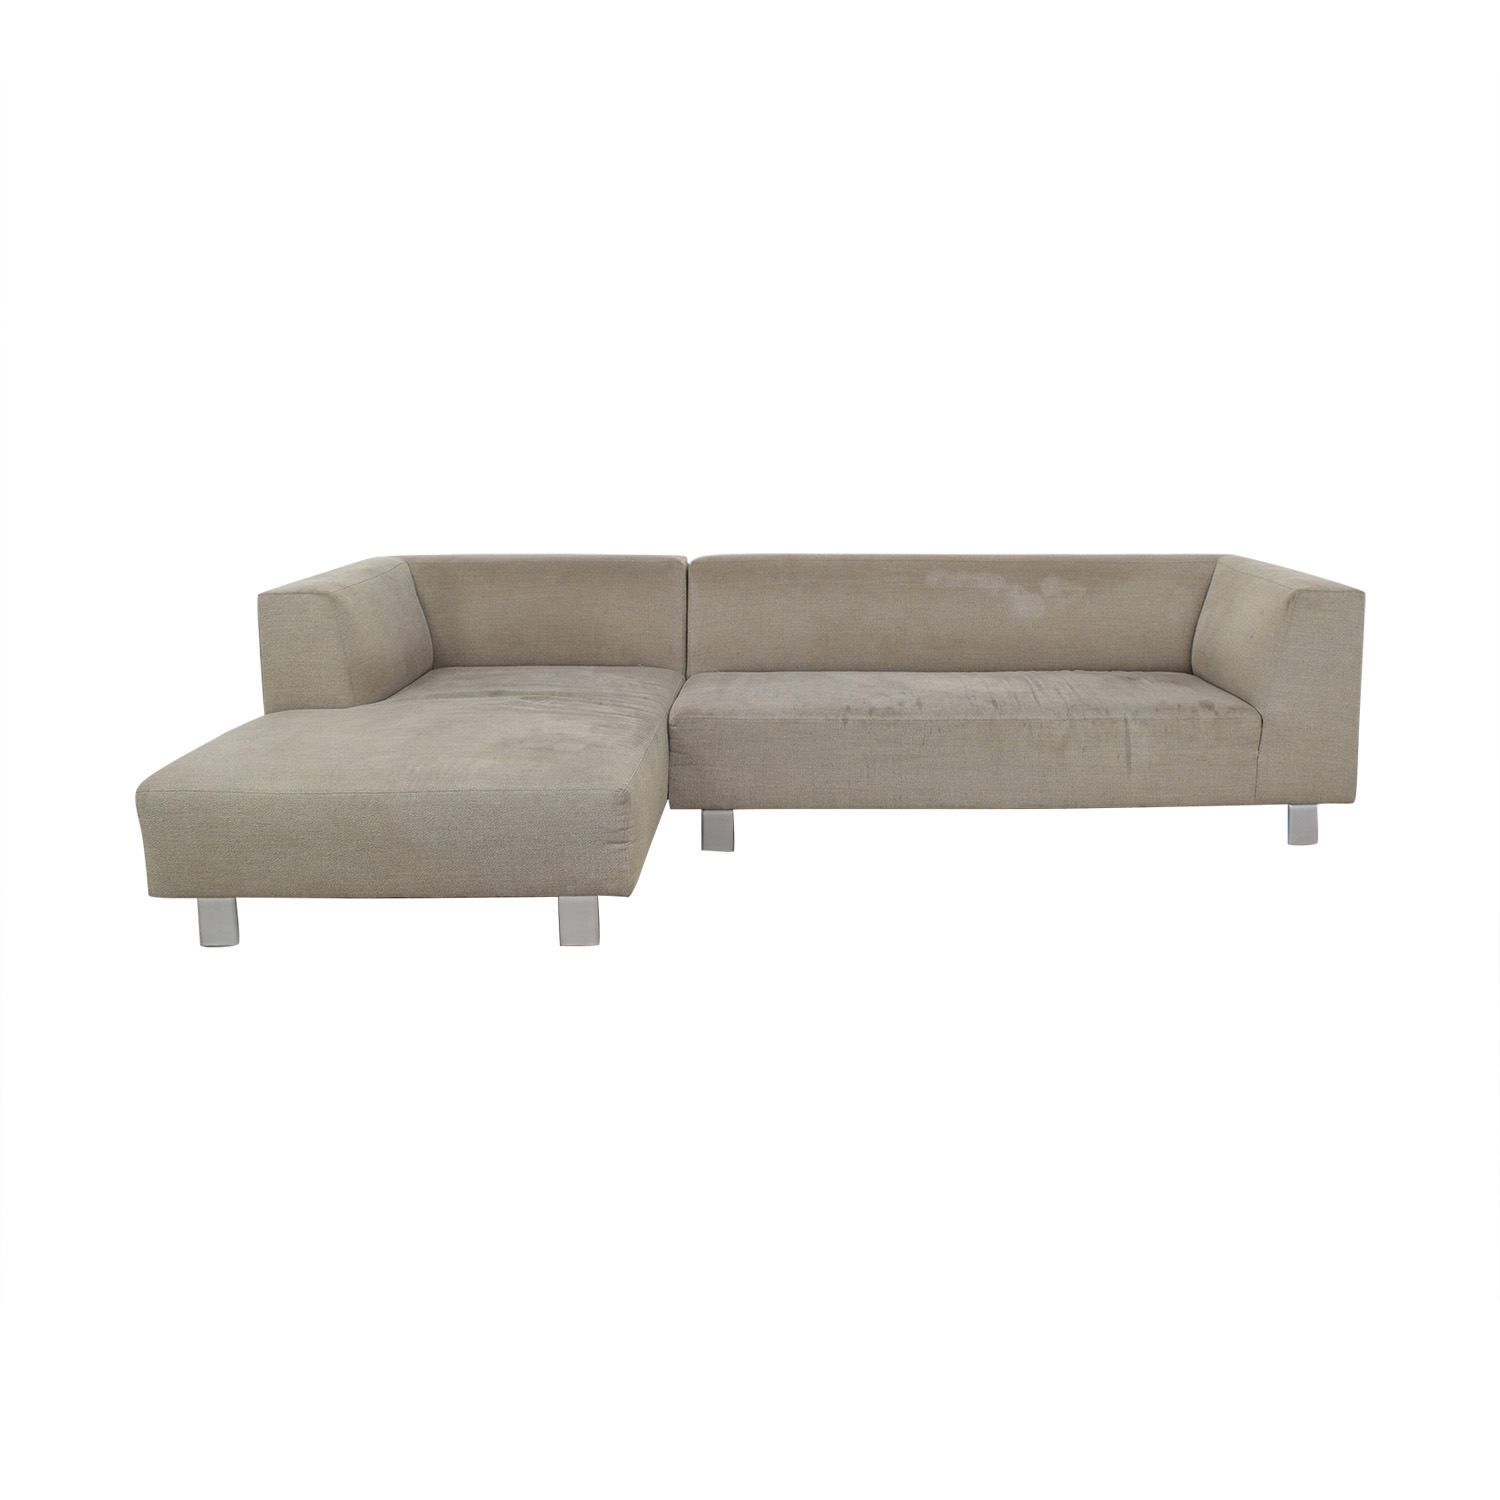 84% OFF - Room & Board Room & Board Grey L-Shaped Couch / Sofas